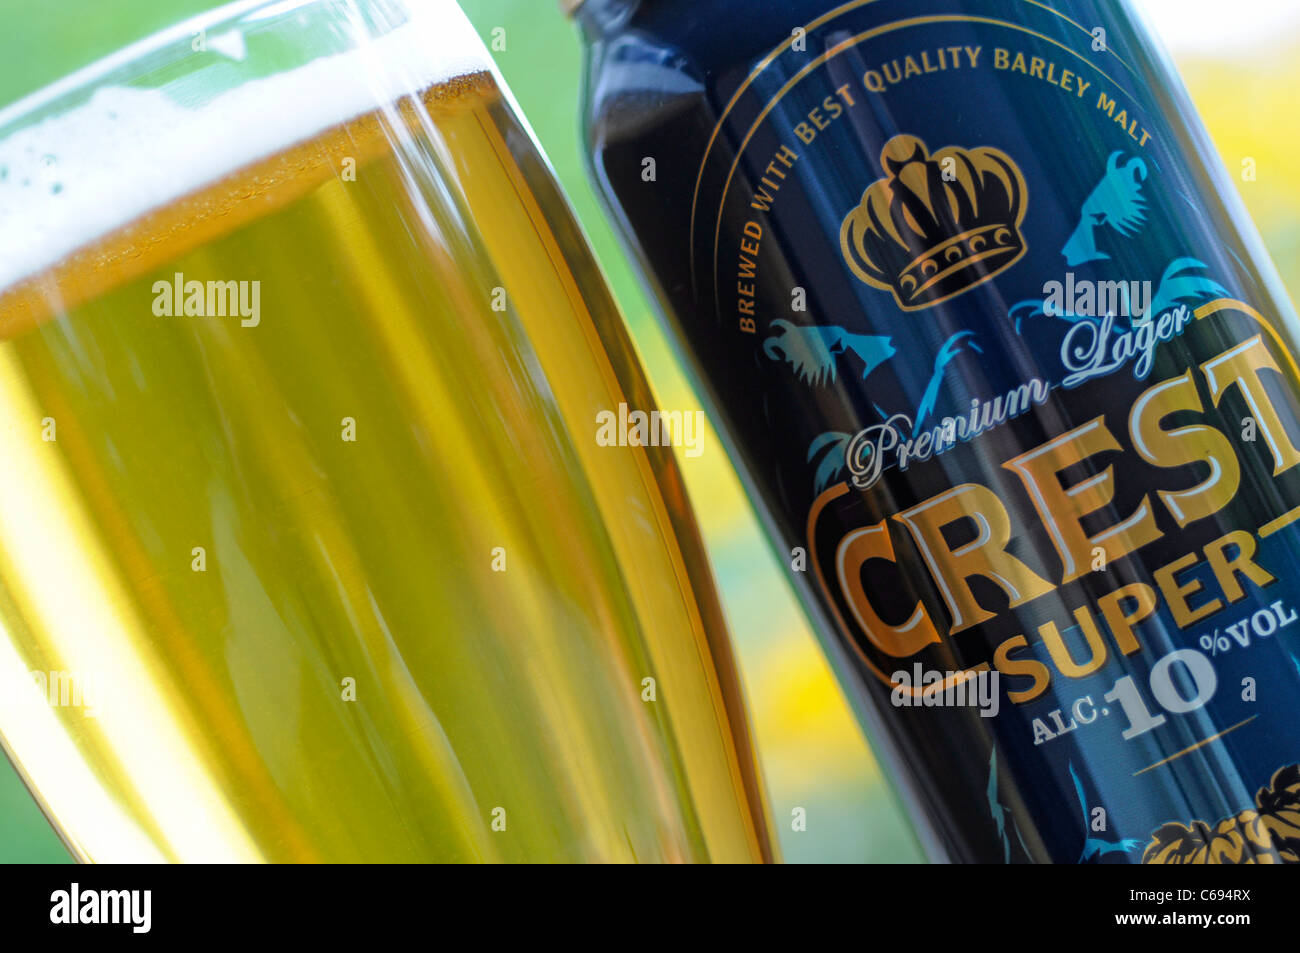 Beer Glass and Can, Crest Lager, UK Beer - Stock Image